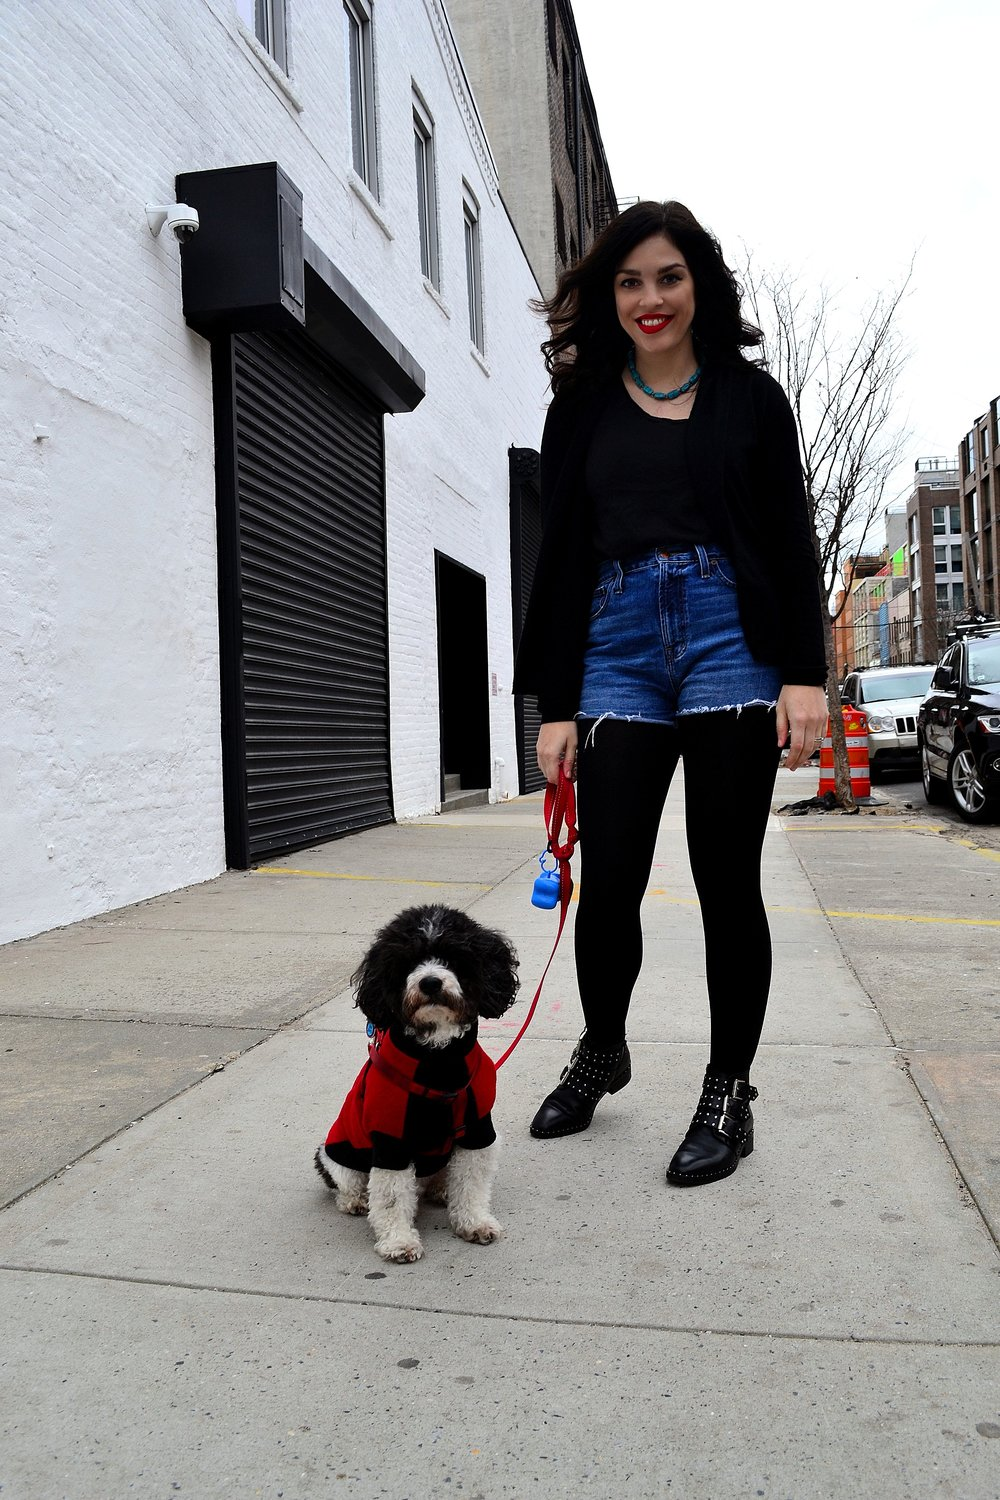 madewell tank shorts loft tights asos booties express sweater dog 4.JPG